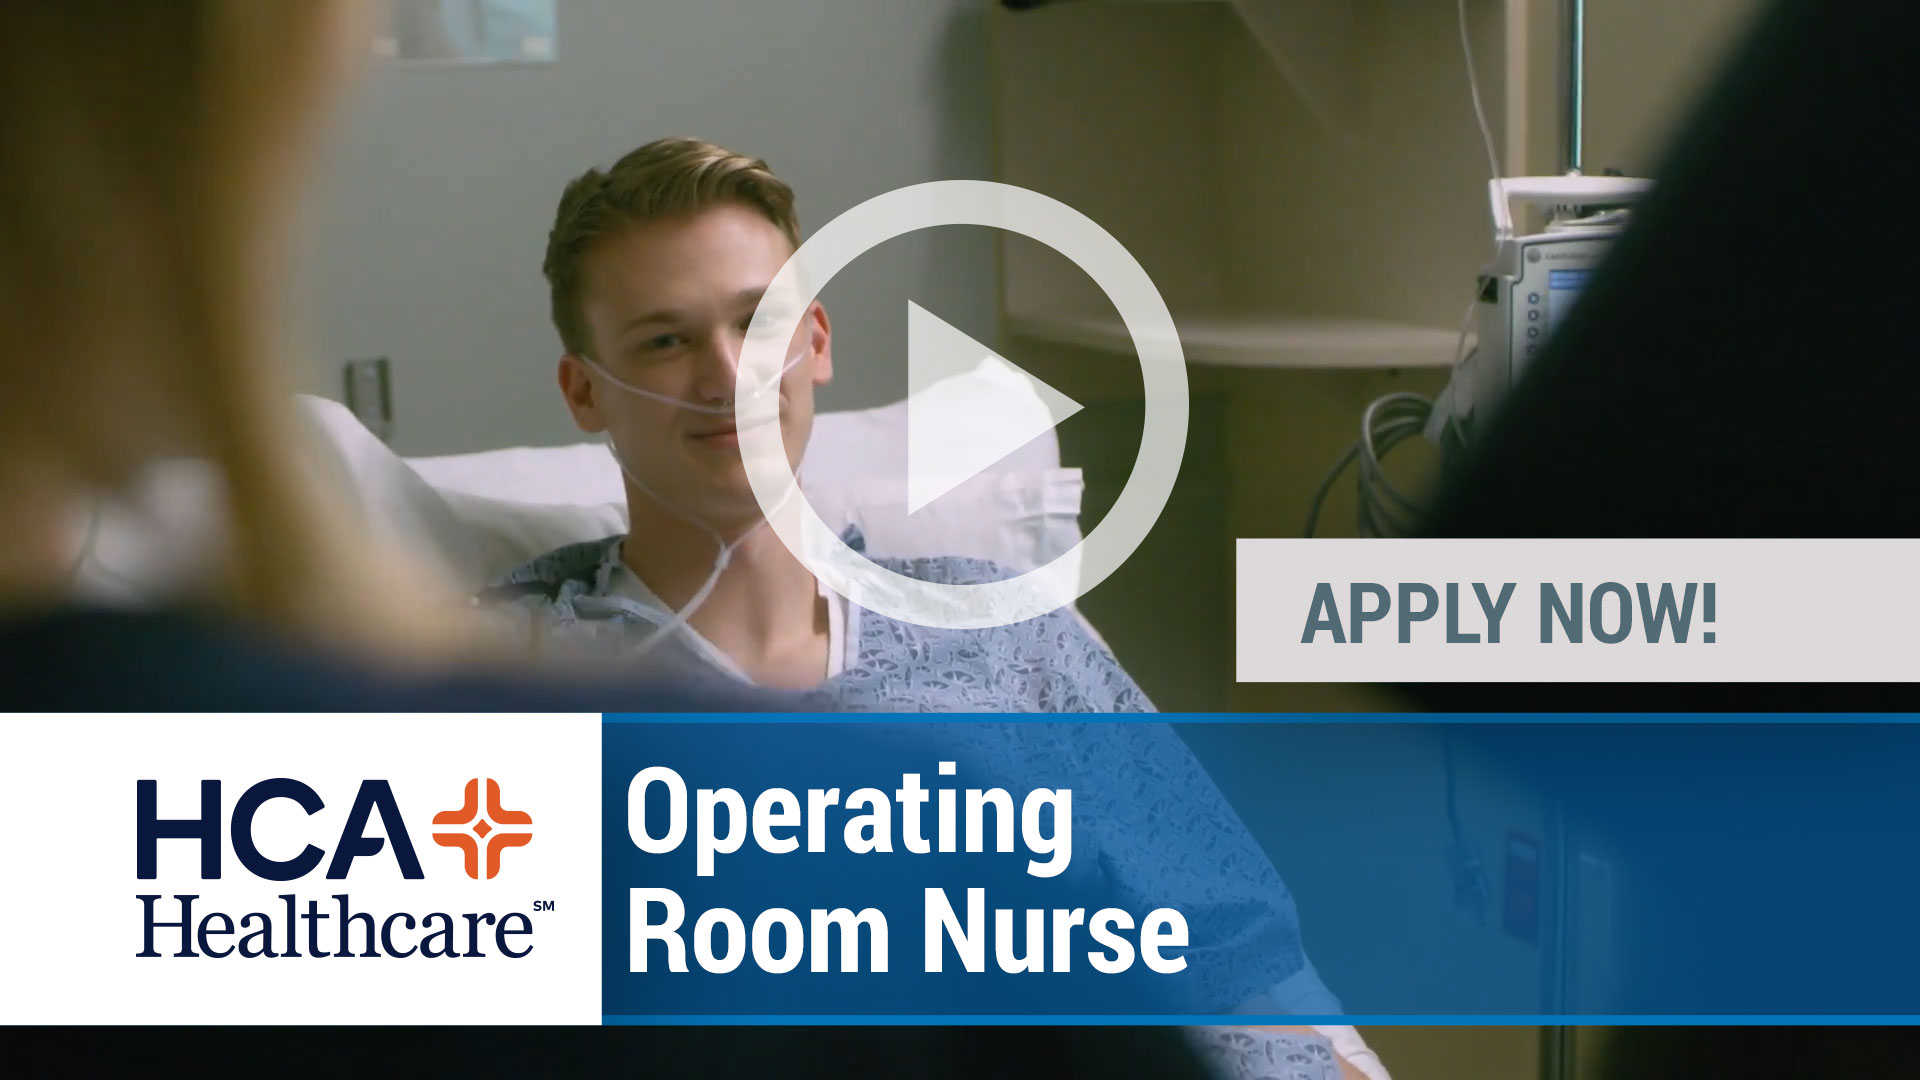 Watch our careers video for available job opening Operating Room Nurse in Bradenton, Florida